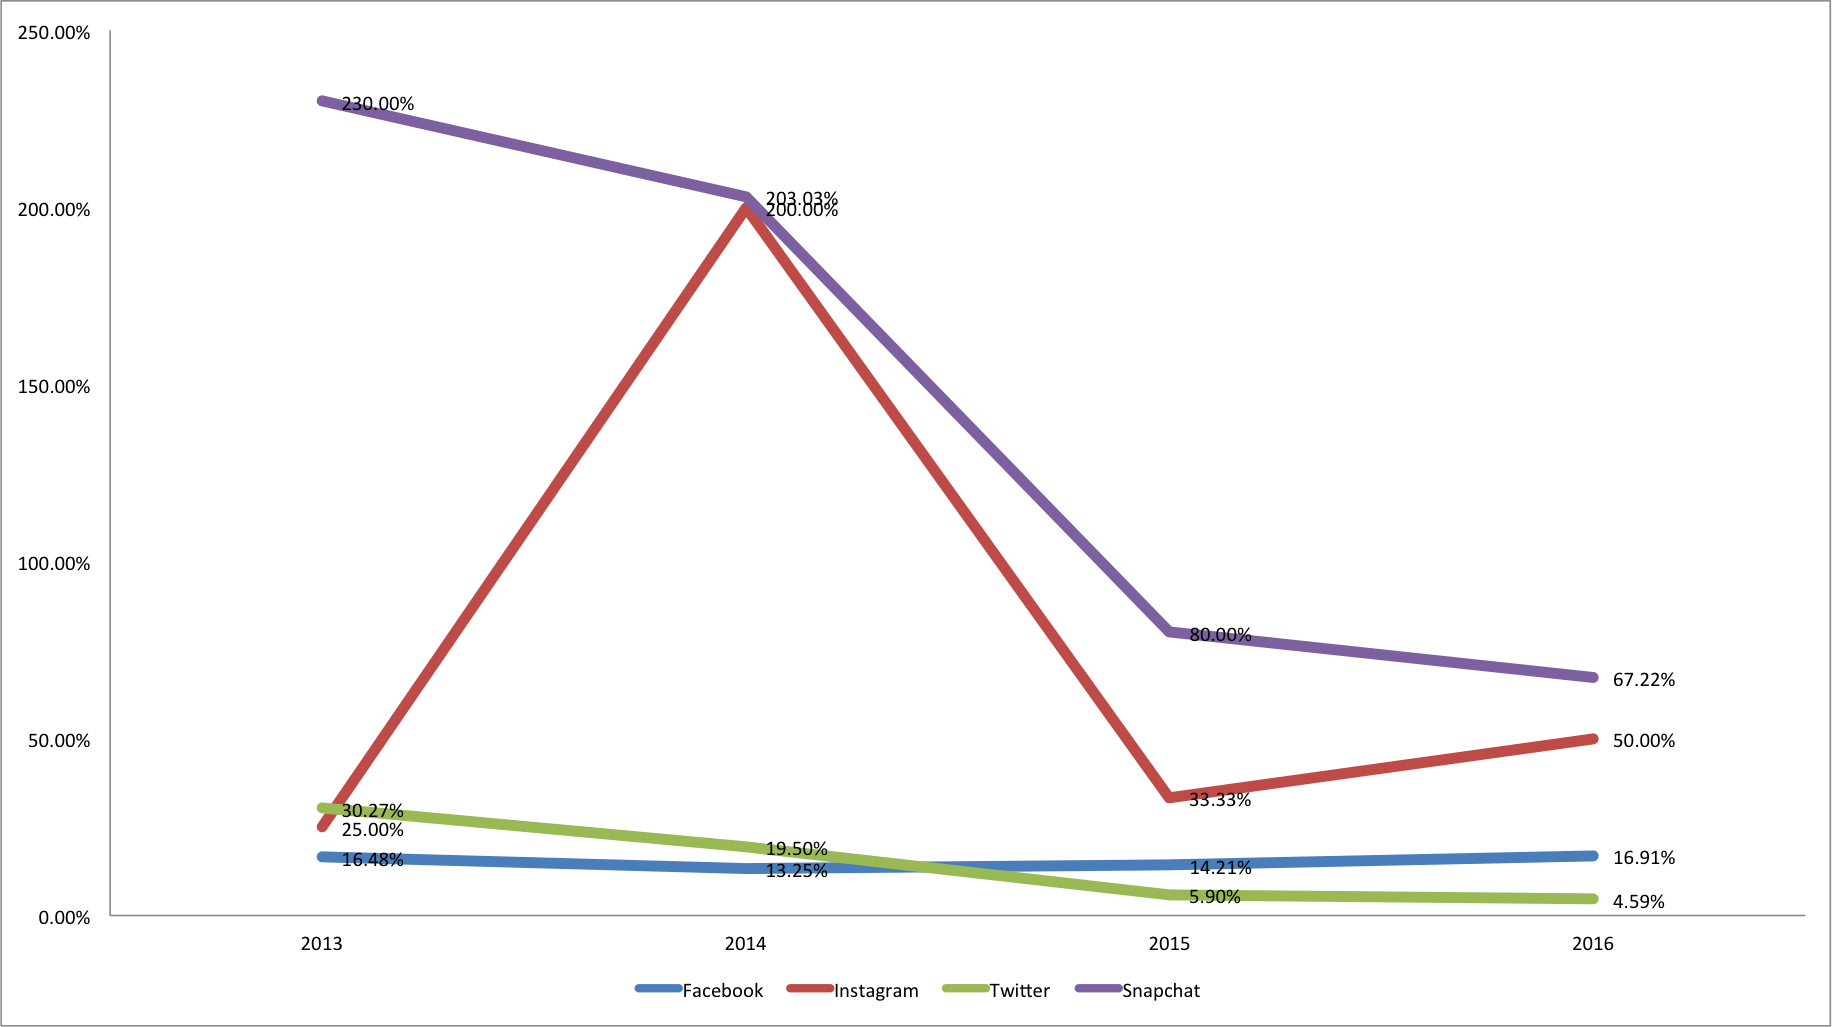 Social Media Growth Rate Comparison 2013-2016